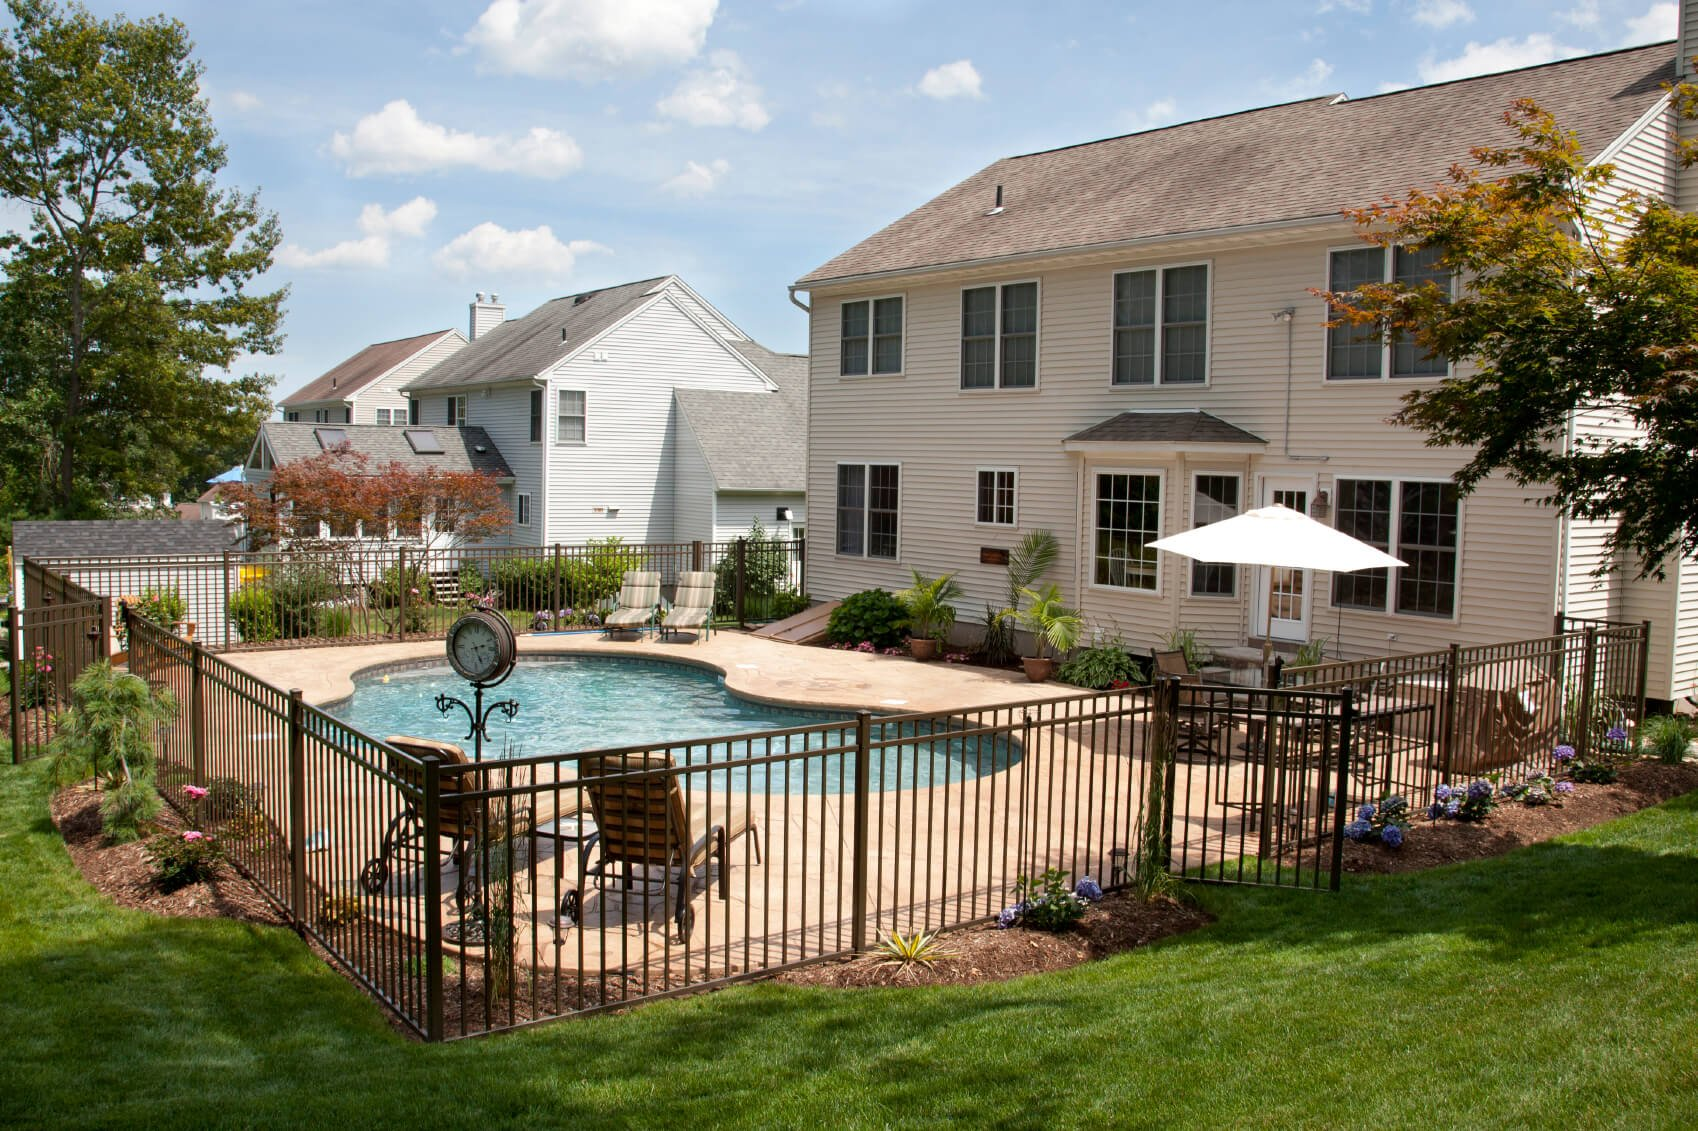 This is a simple black metal post fence. this is a very simple and utilitarian way to fence off your pool. It is a classic, simple and easy to manage option. It also creates minimal obstruction of the view.